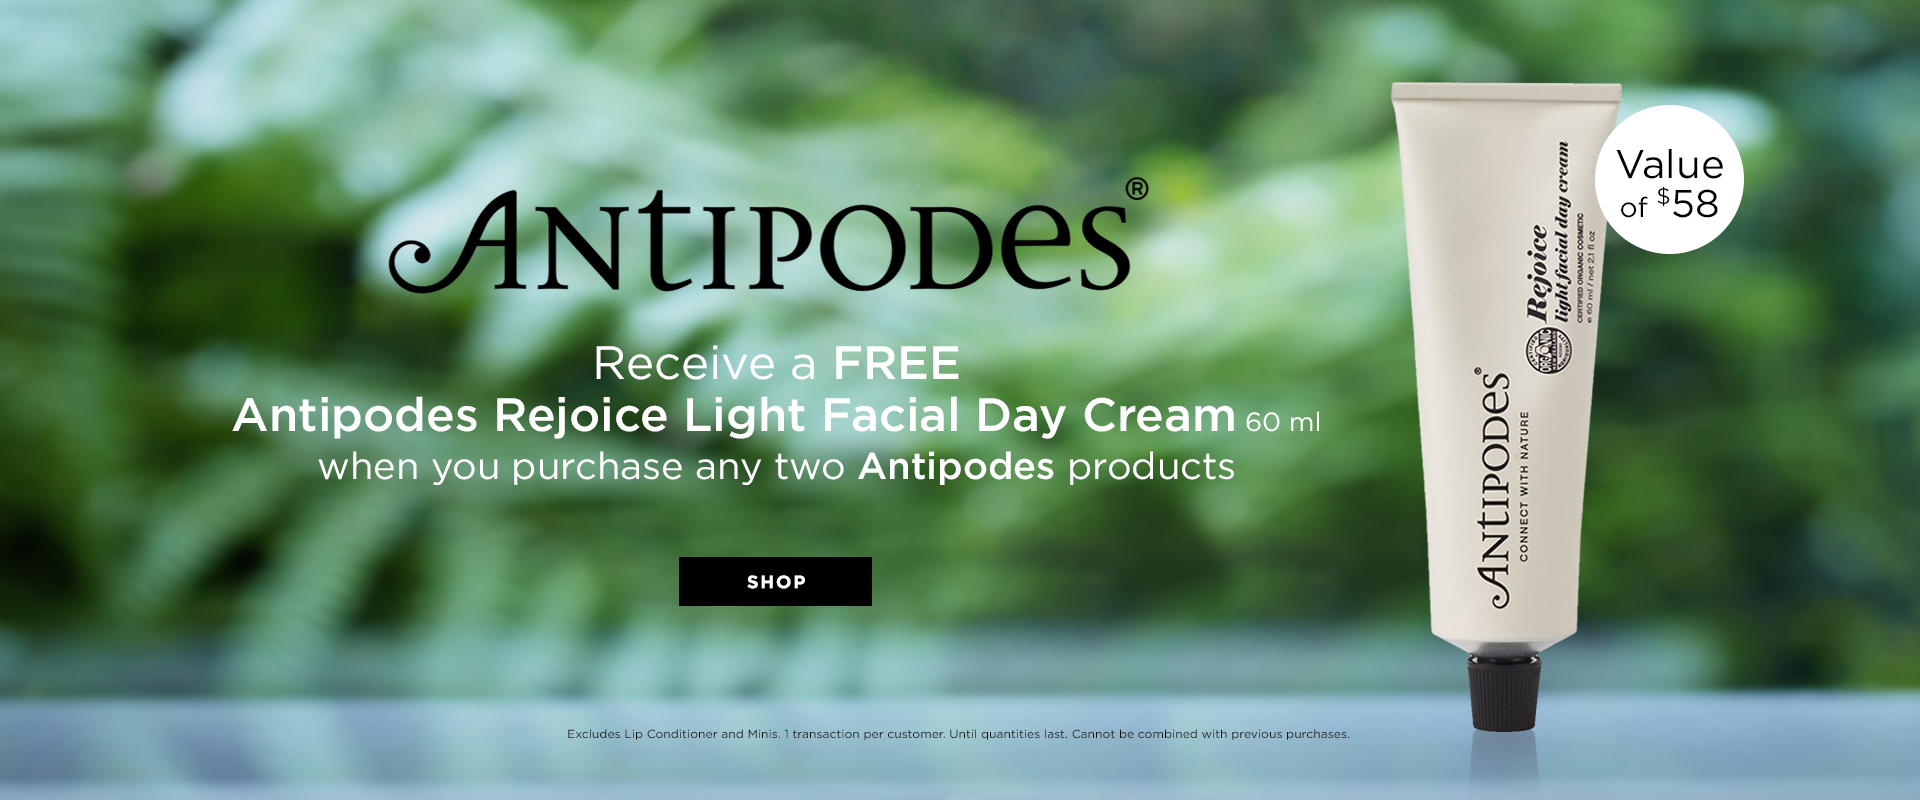 Antipodes Gift with purchase